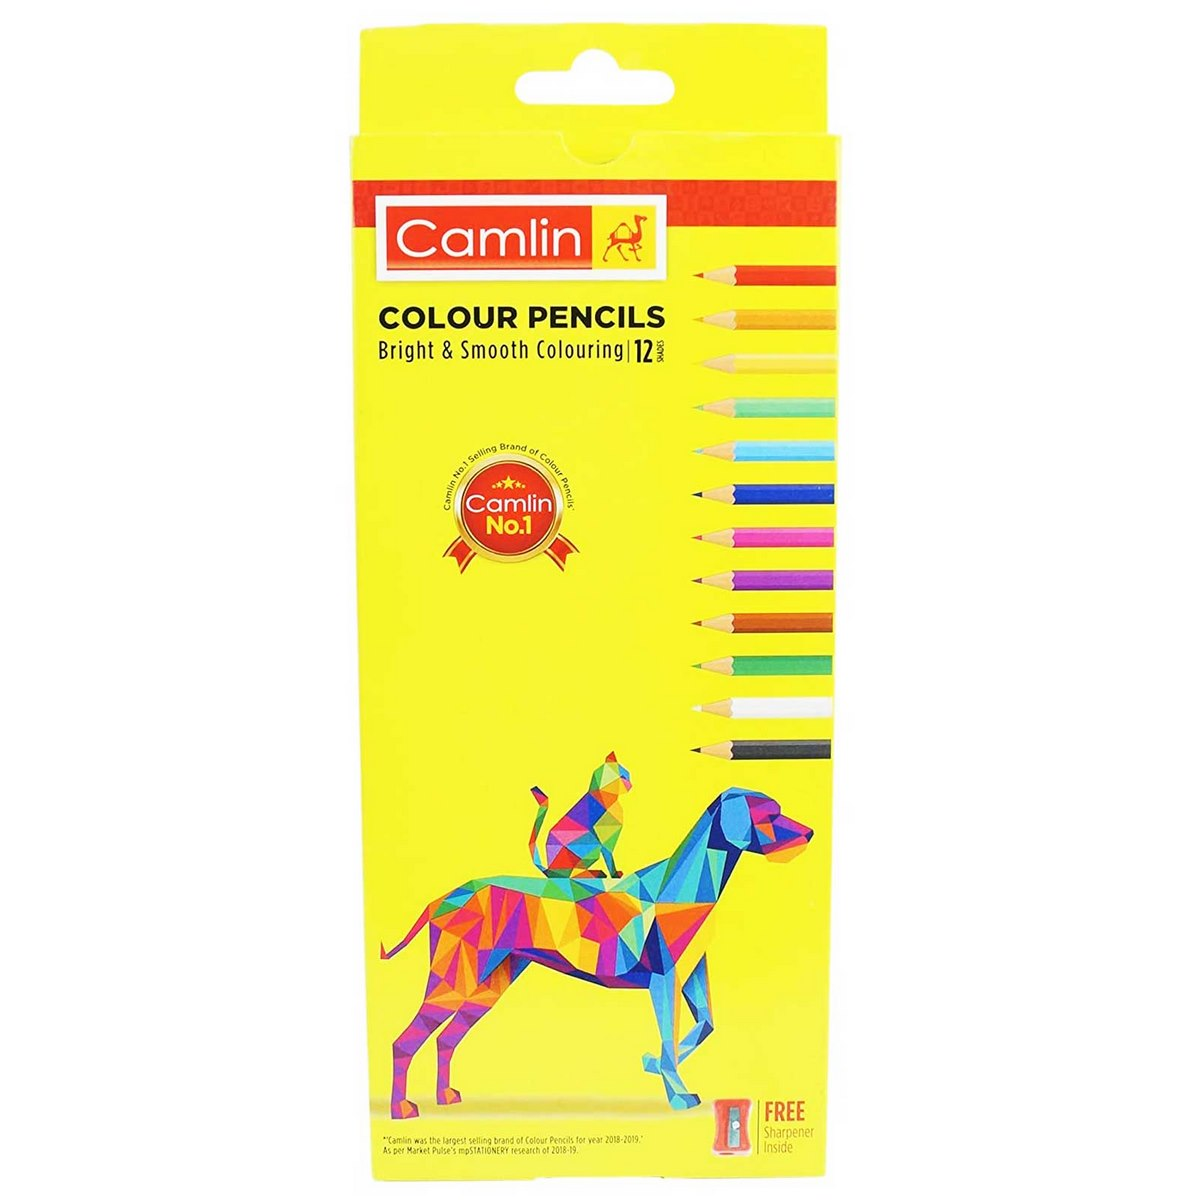 Camlin Colour Pencils 4192566